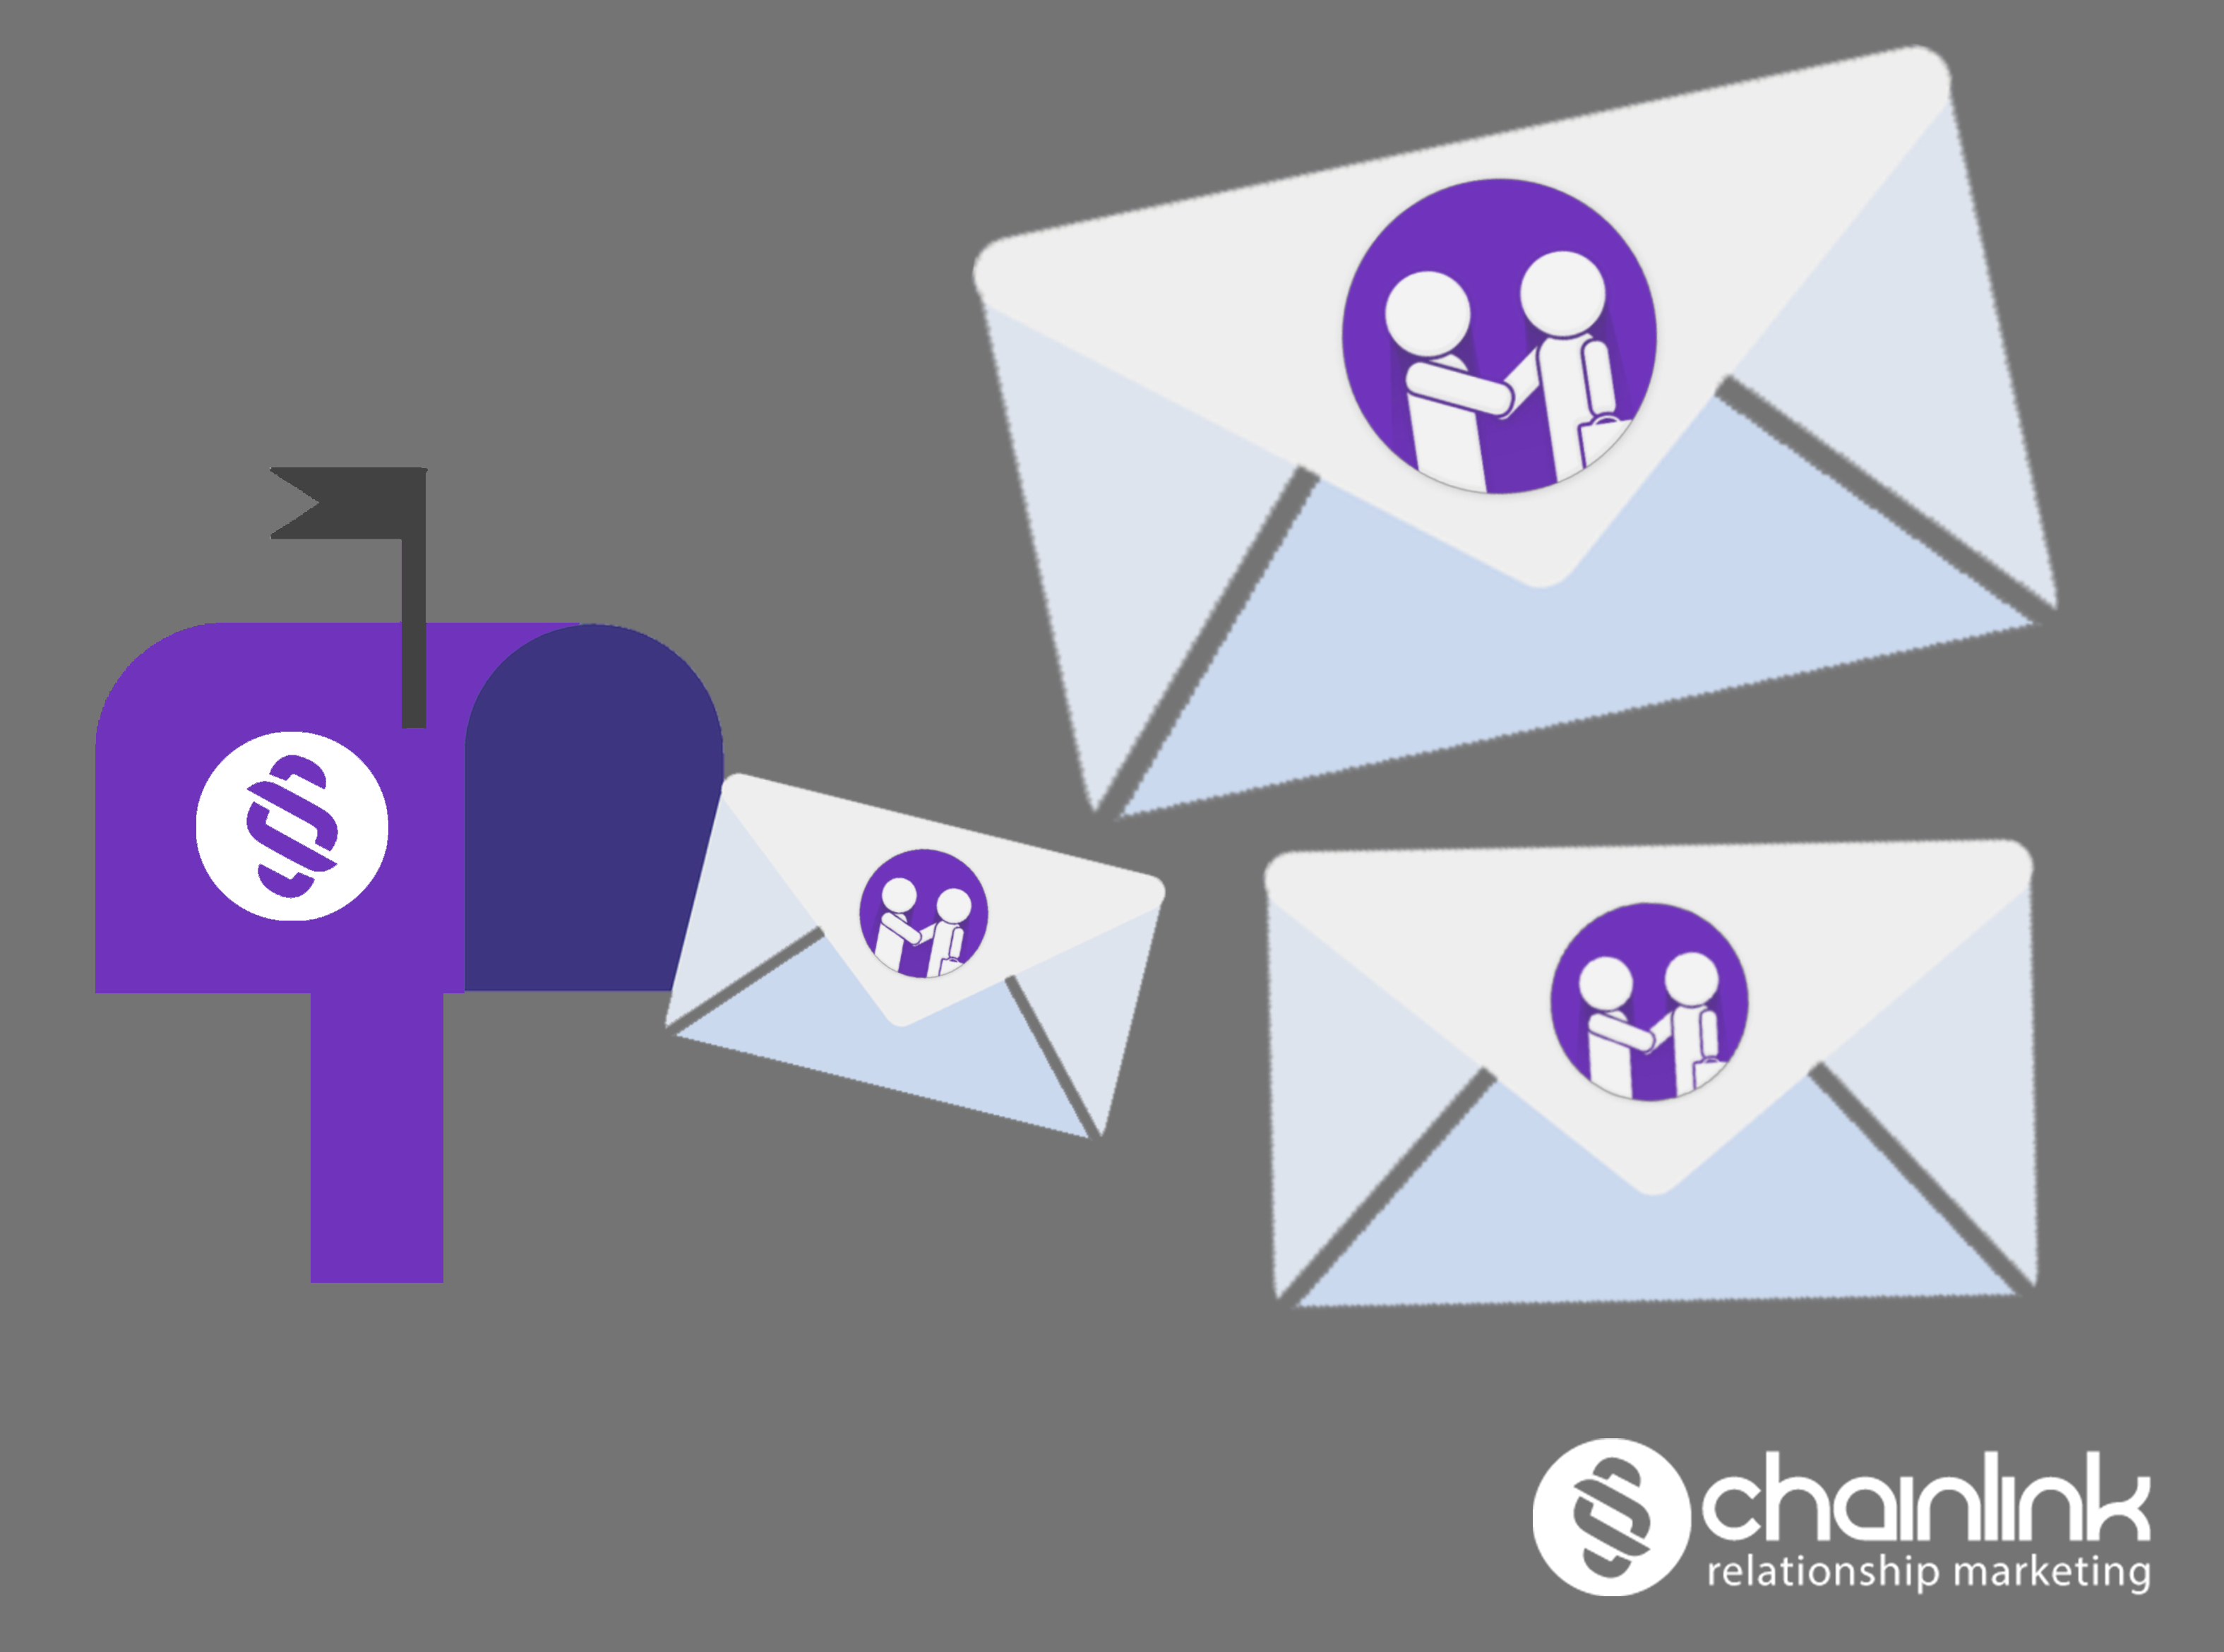 email marketing strategy - Chainlink Relationship Marketing